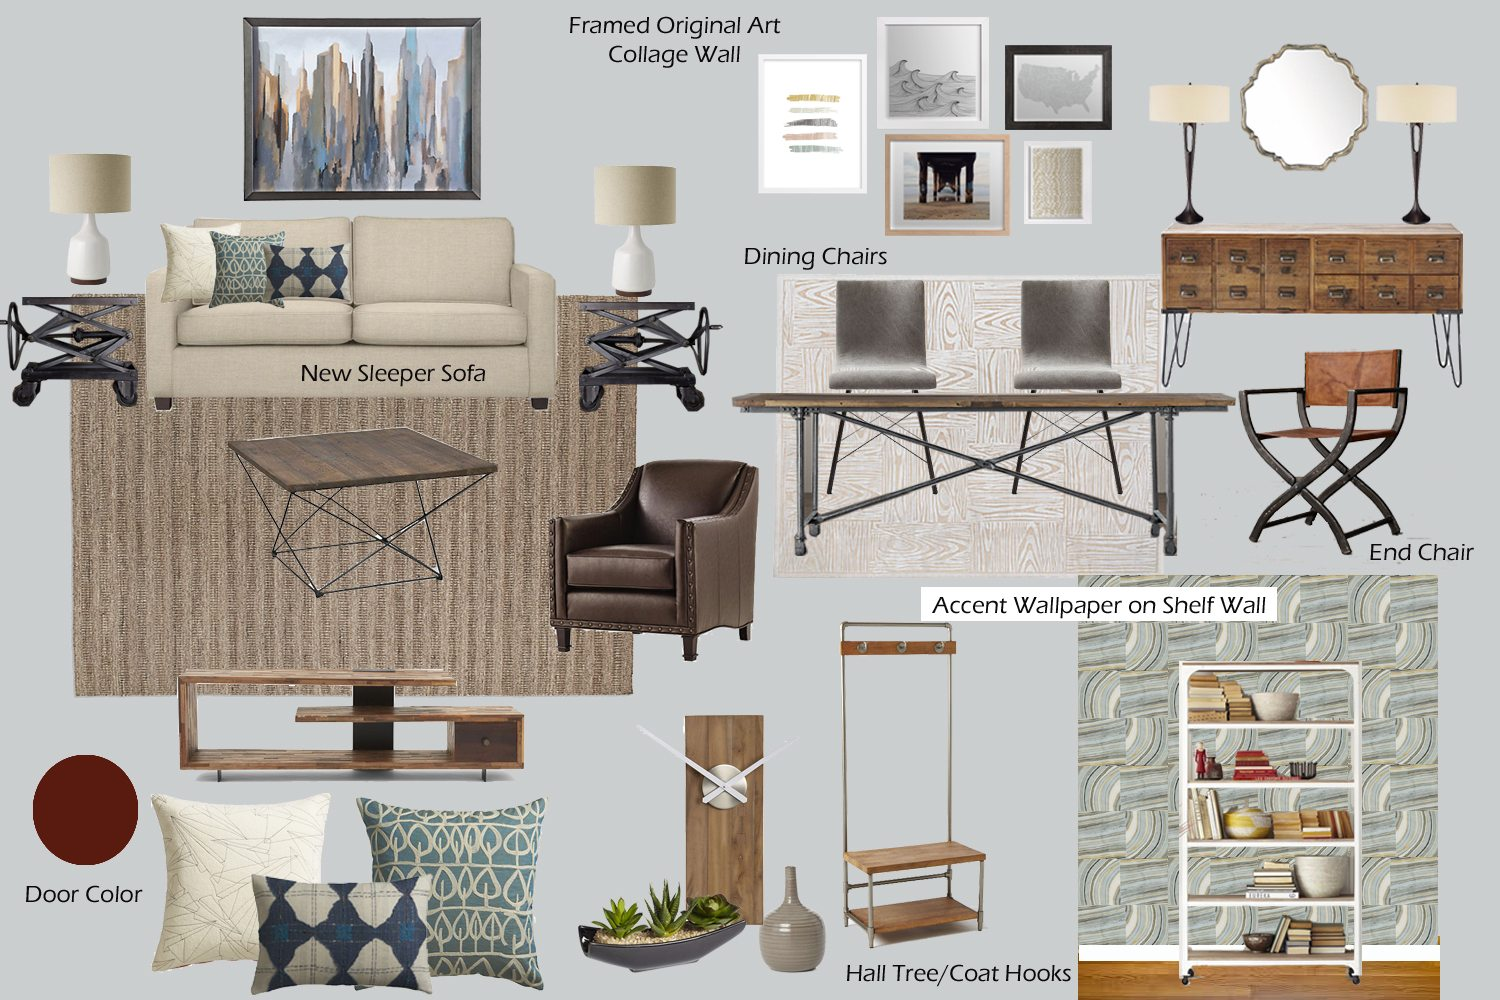 30 Inspirational Mood Boards And Tips To Create Your Own The Interior Design Student